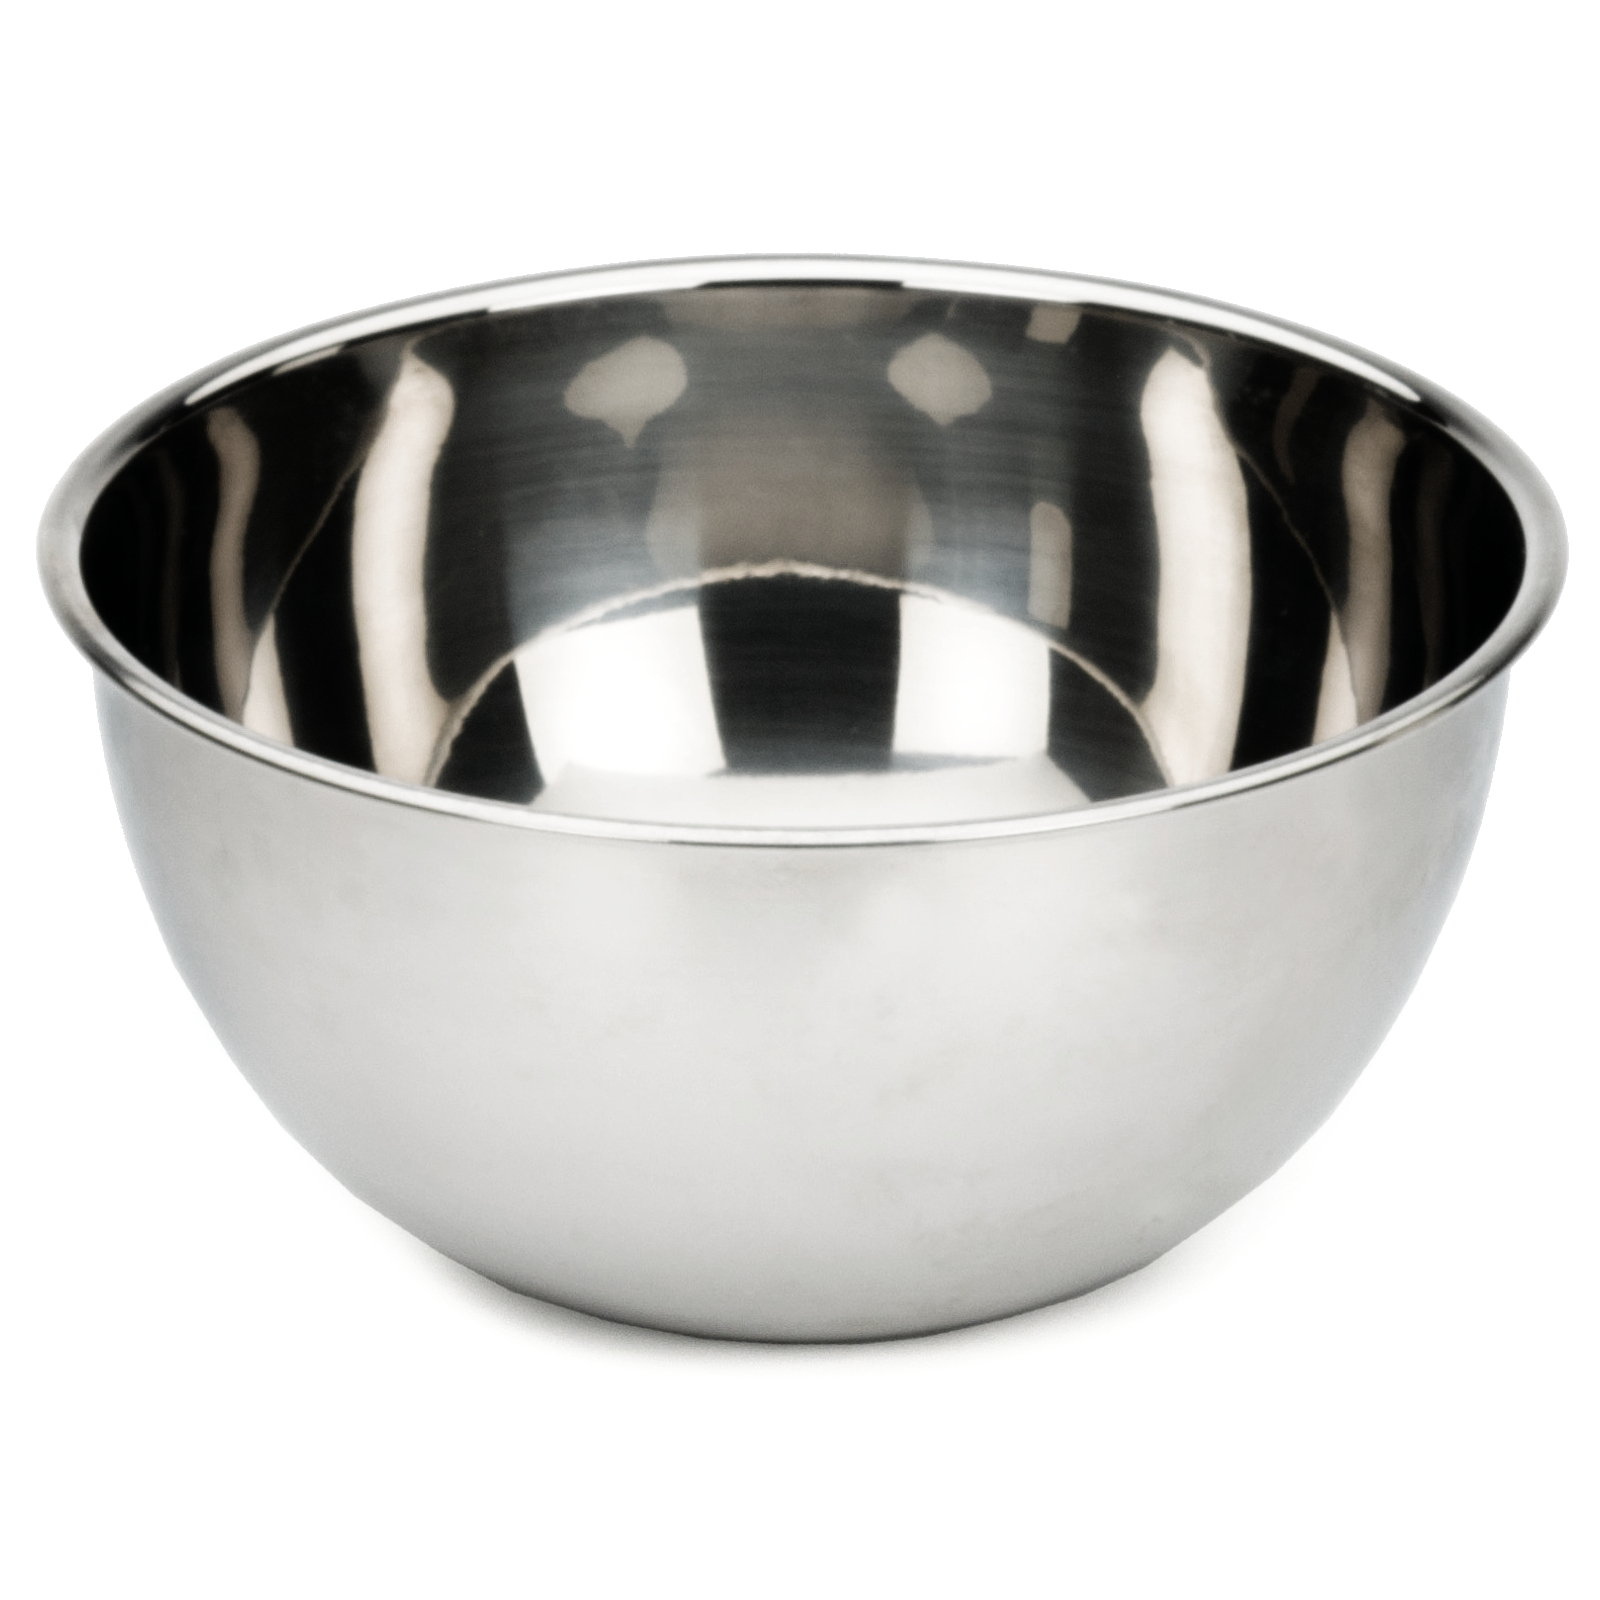 RSVP Endurance Stainless Steel 2 Quart Mixing Bowl